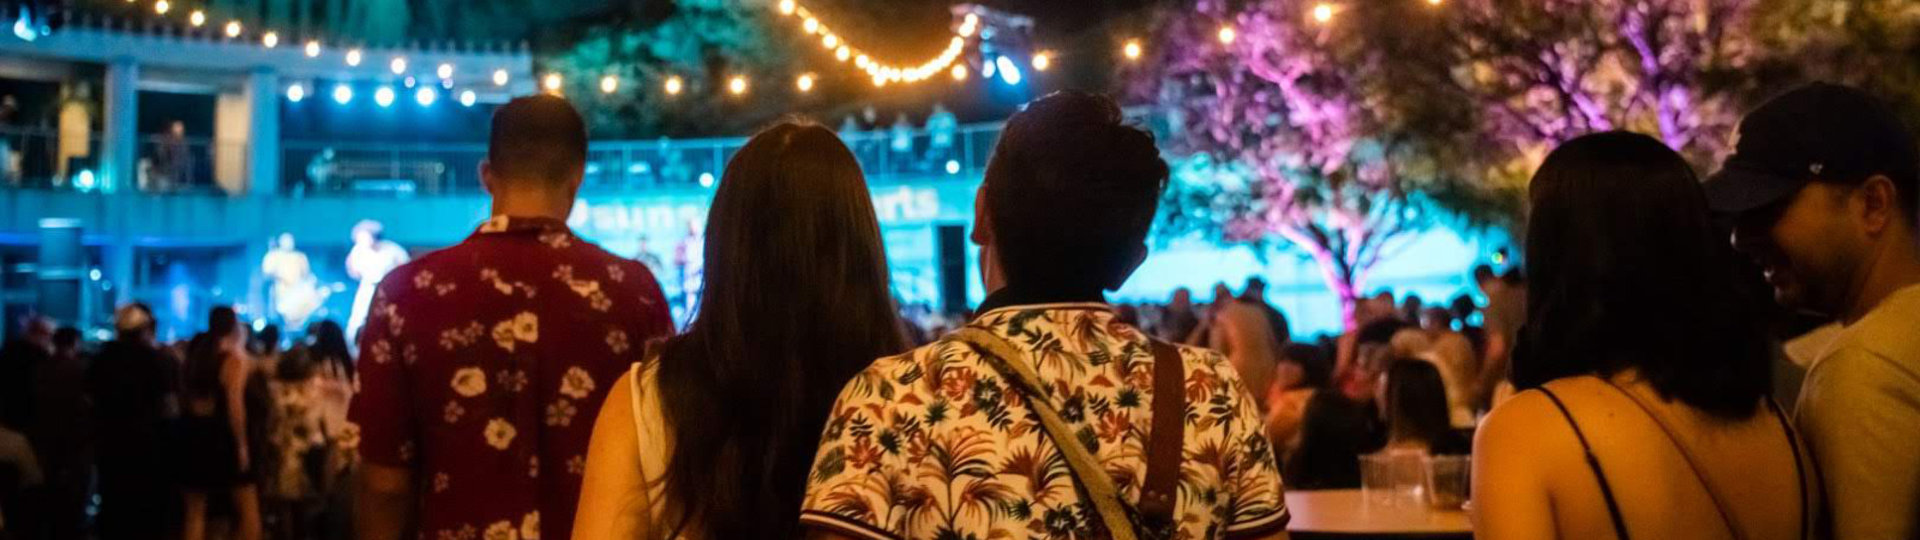 Visitors outdoors under strings of lights looking at stage during Sunset Concerts